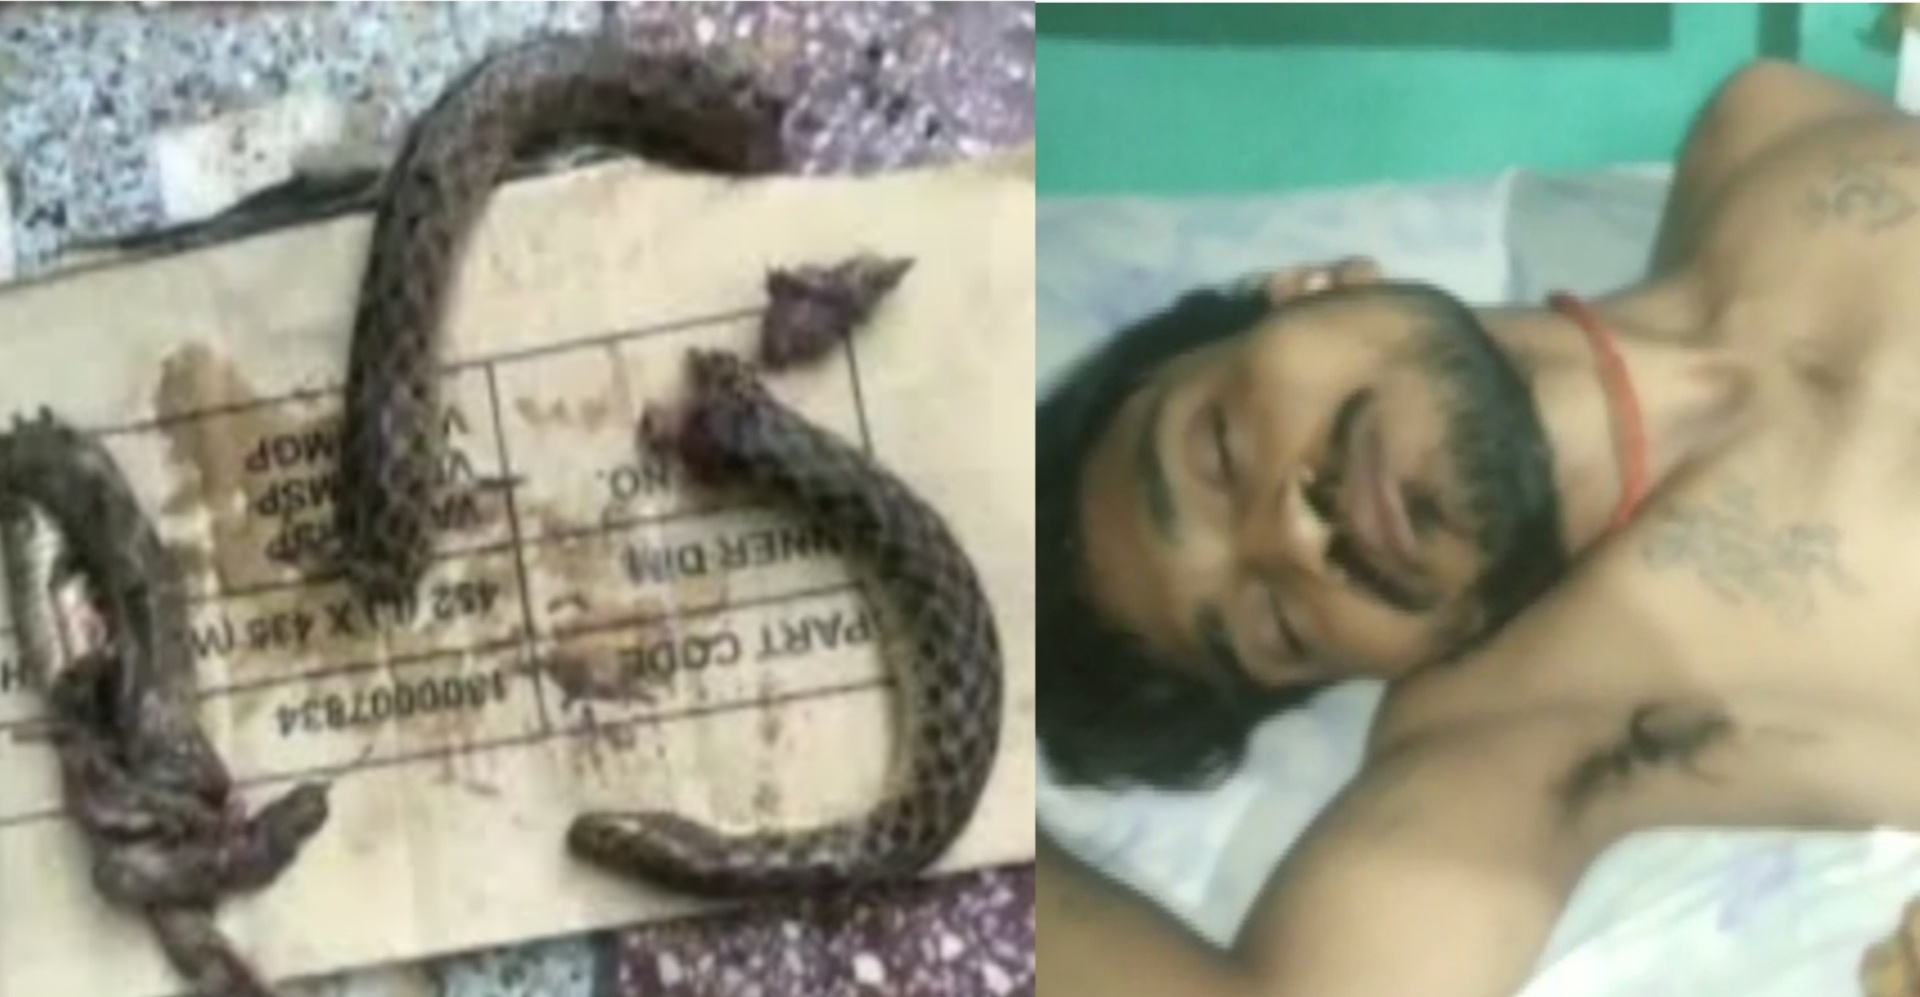 A drunken man bit a snake into pieces as it attacked him